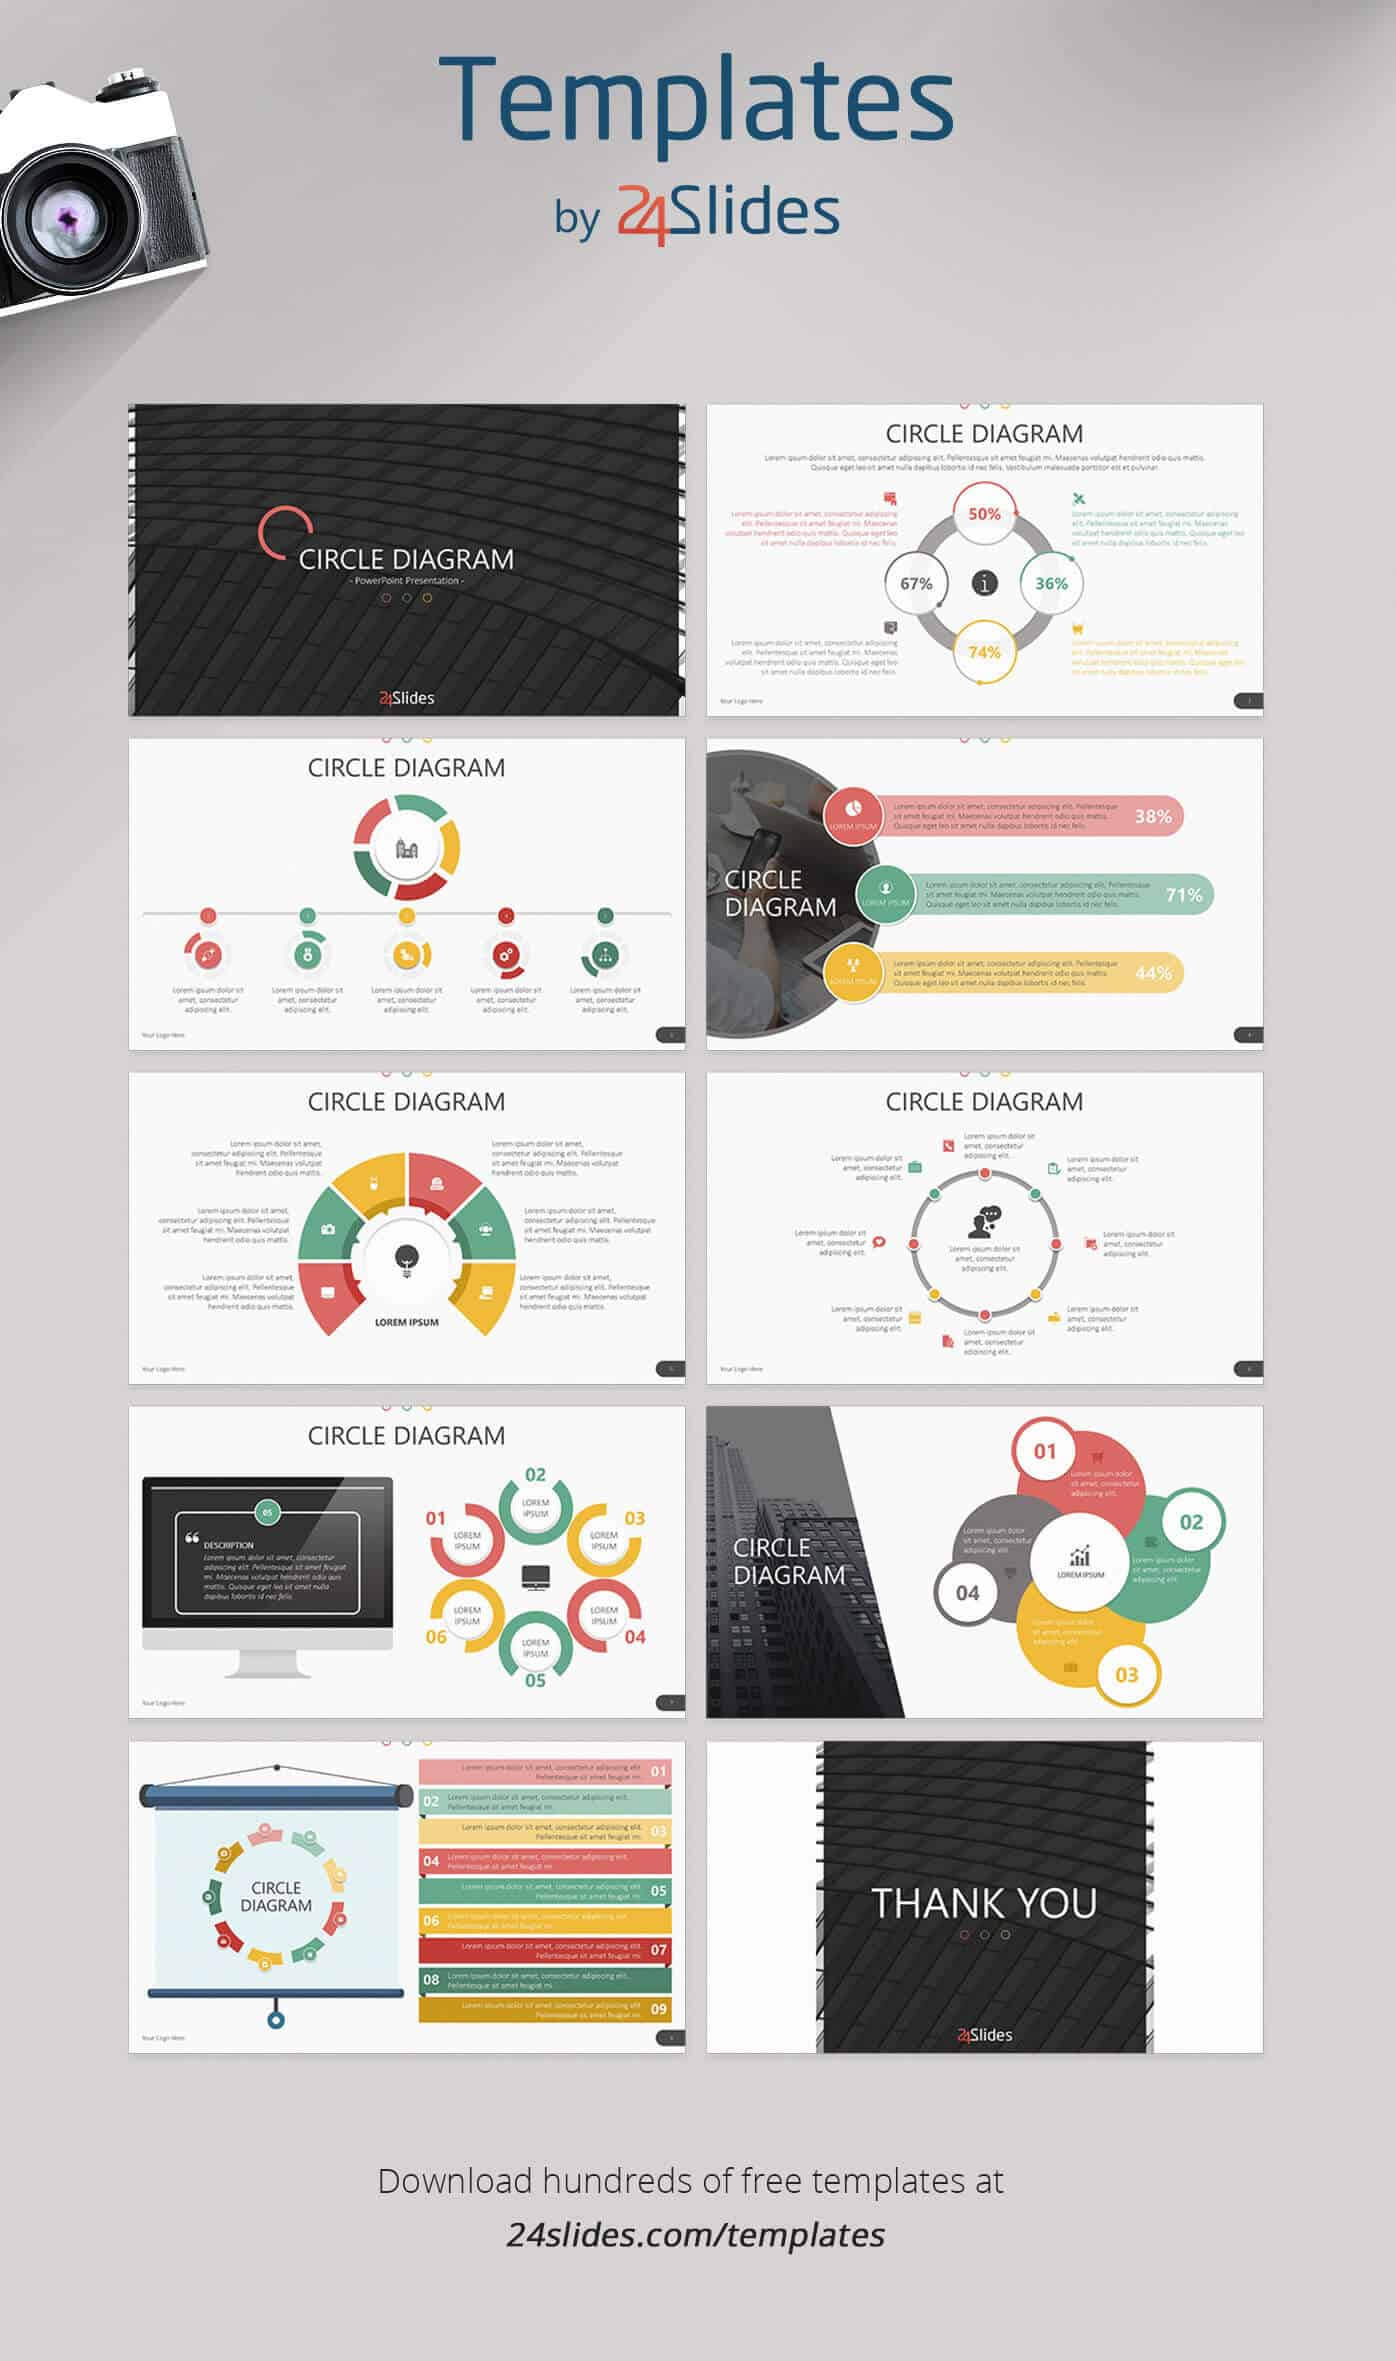 15 Fun And Colorful Free Powerpoint Templates   Present Better Inside Powerpoint Slides Design Templates For Free